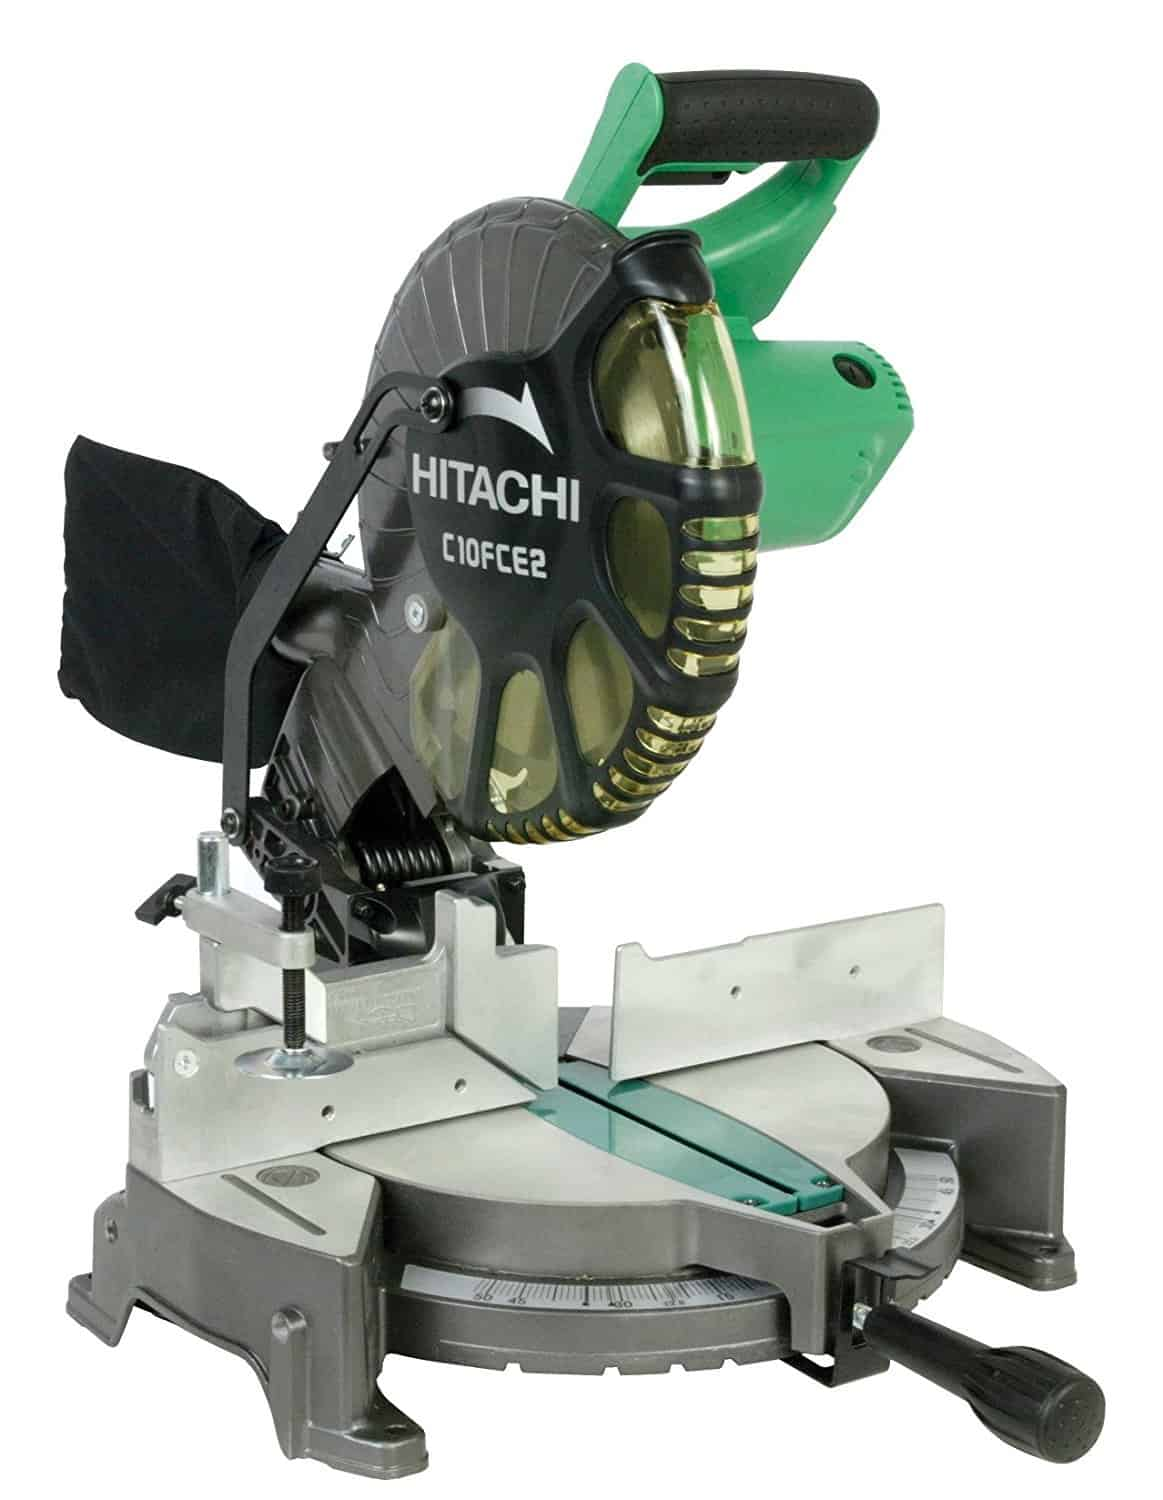 15 Amp 10-inch Single bevel compound miter saw.